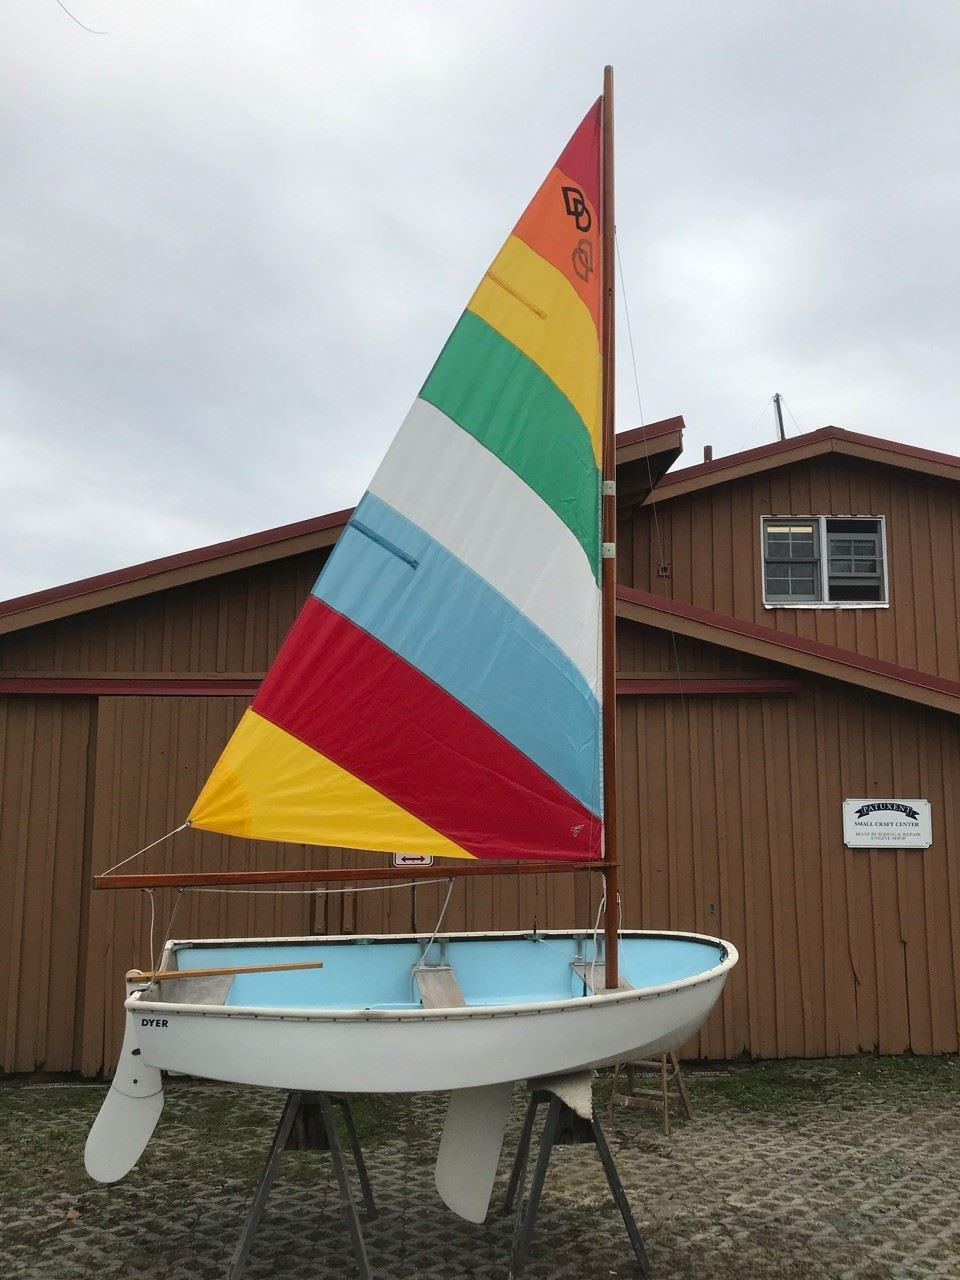 Dyer Dhow dinghy with sailing rig - 1